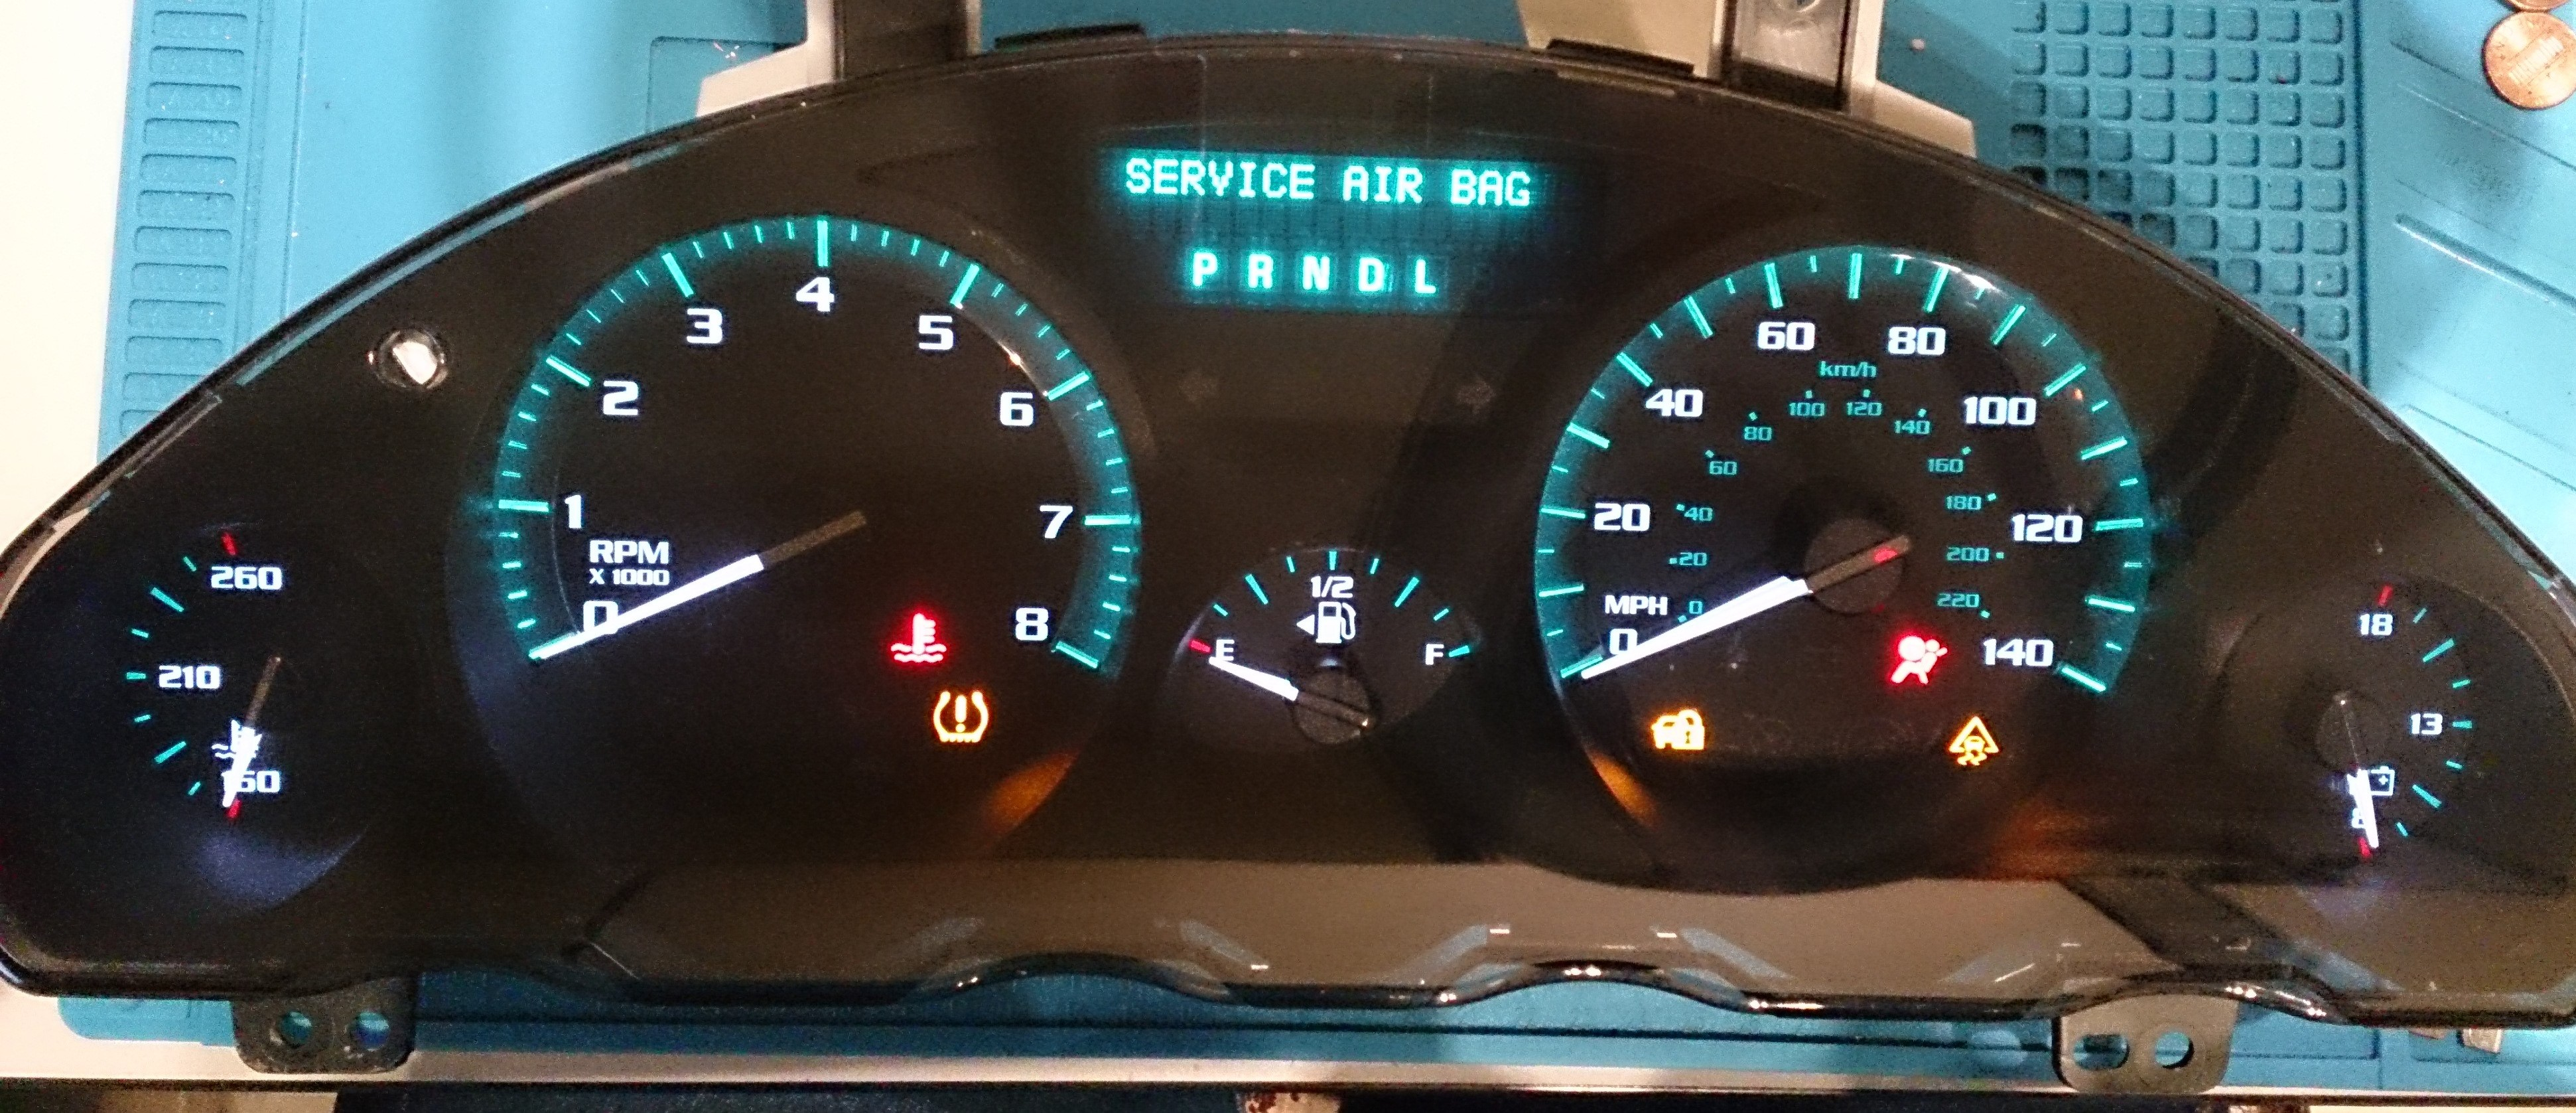 Below Are The Diagrams For The Instrument Cluster Lights And The